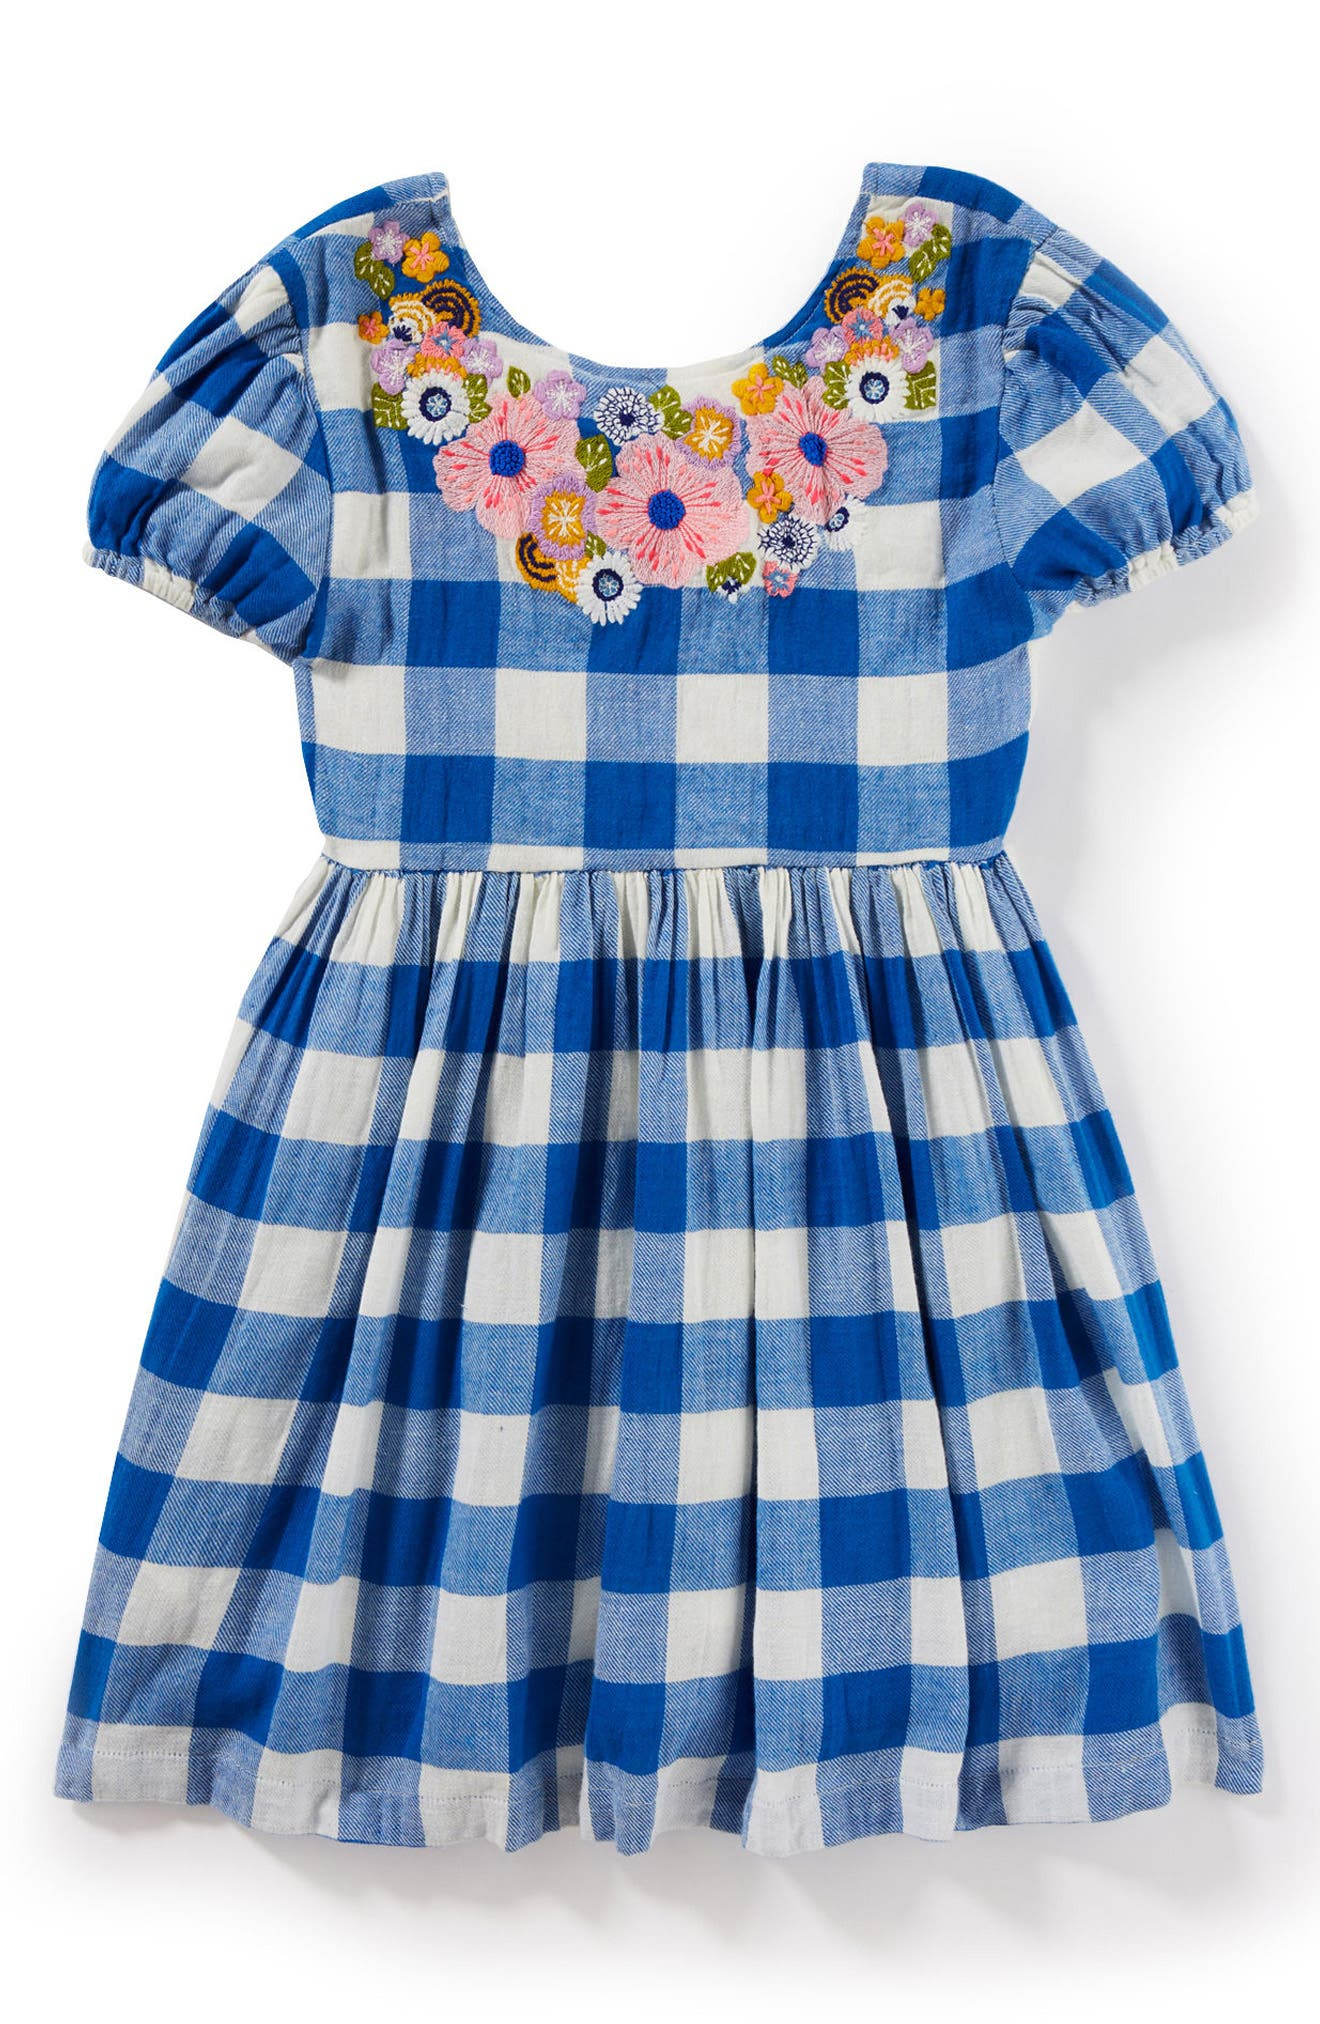 Penelope Embroidered Check Dress,                             Main thumbnail 1, color,                             400